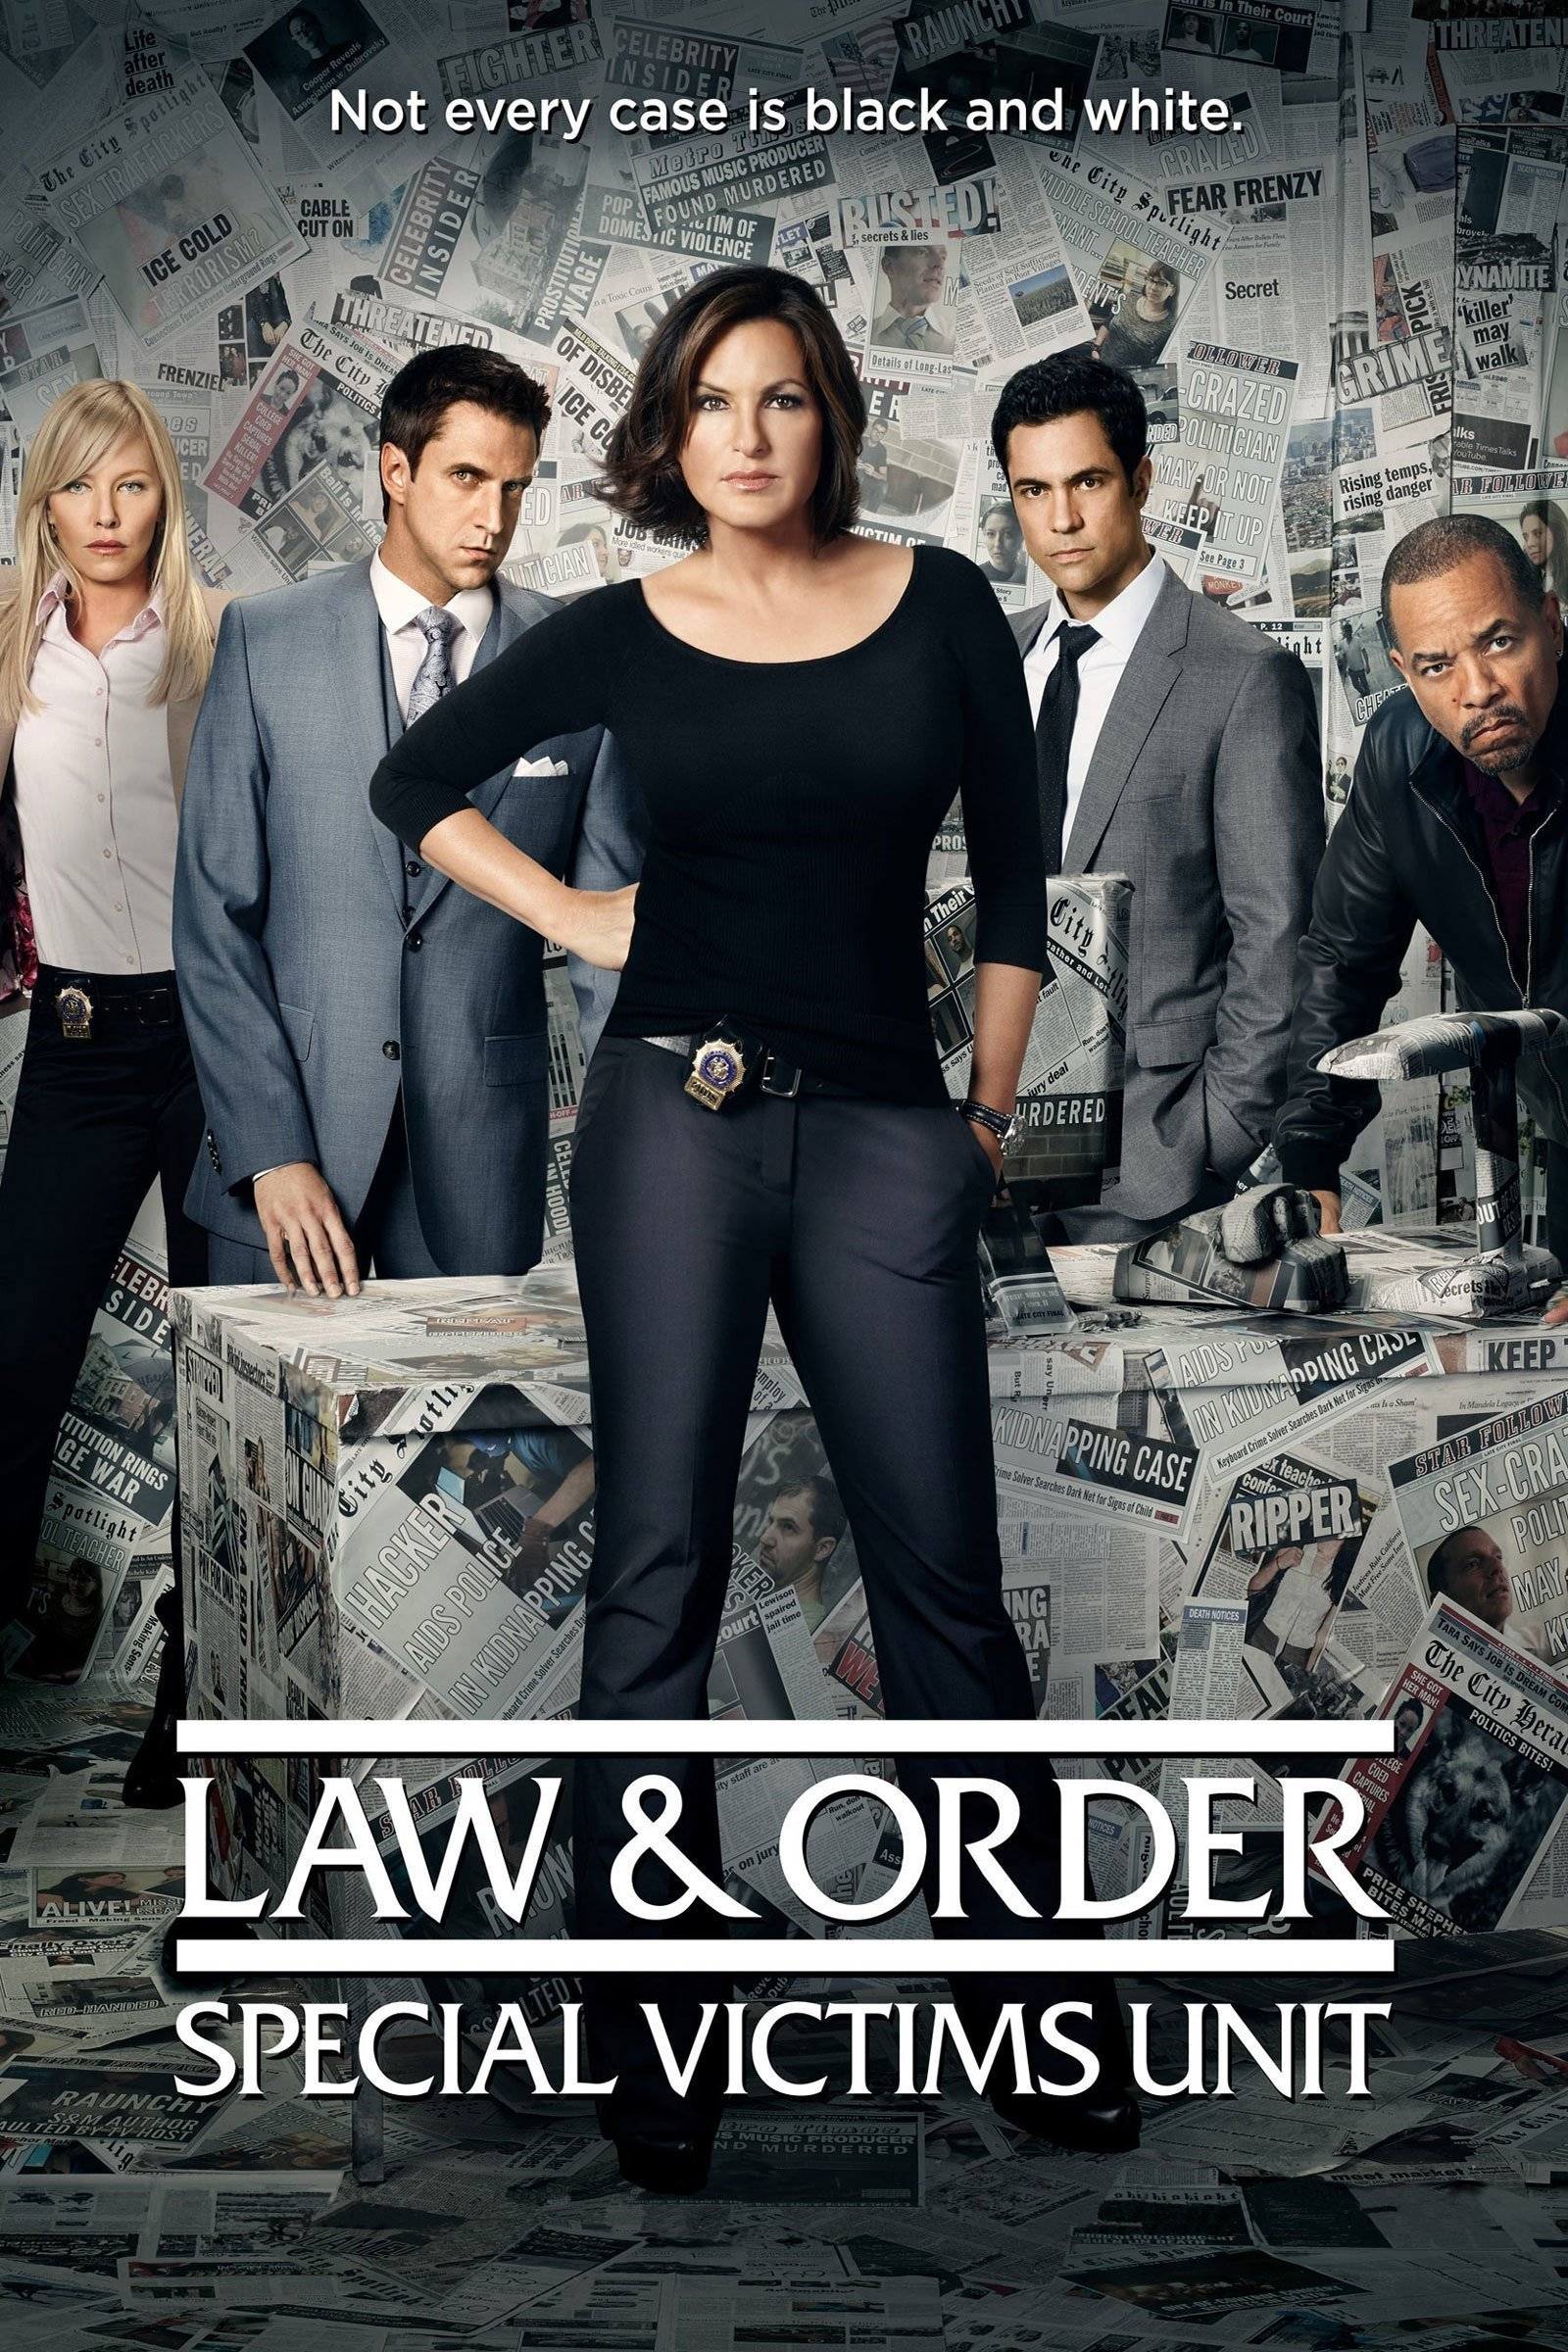 Law Order Special Victims Unit Tv Show Poster Id 102776 Image Abyss